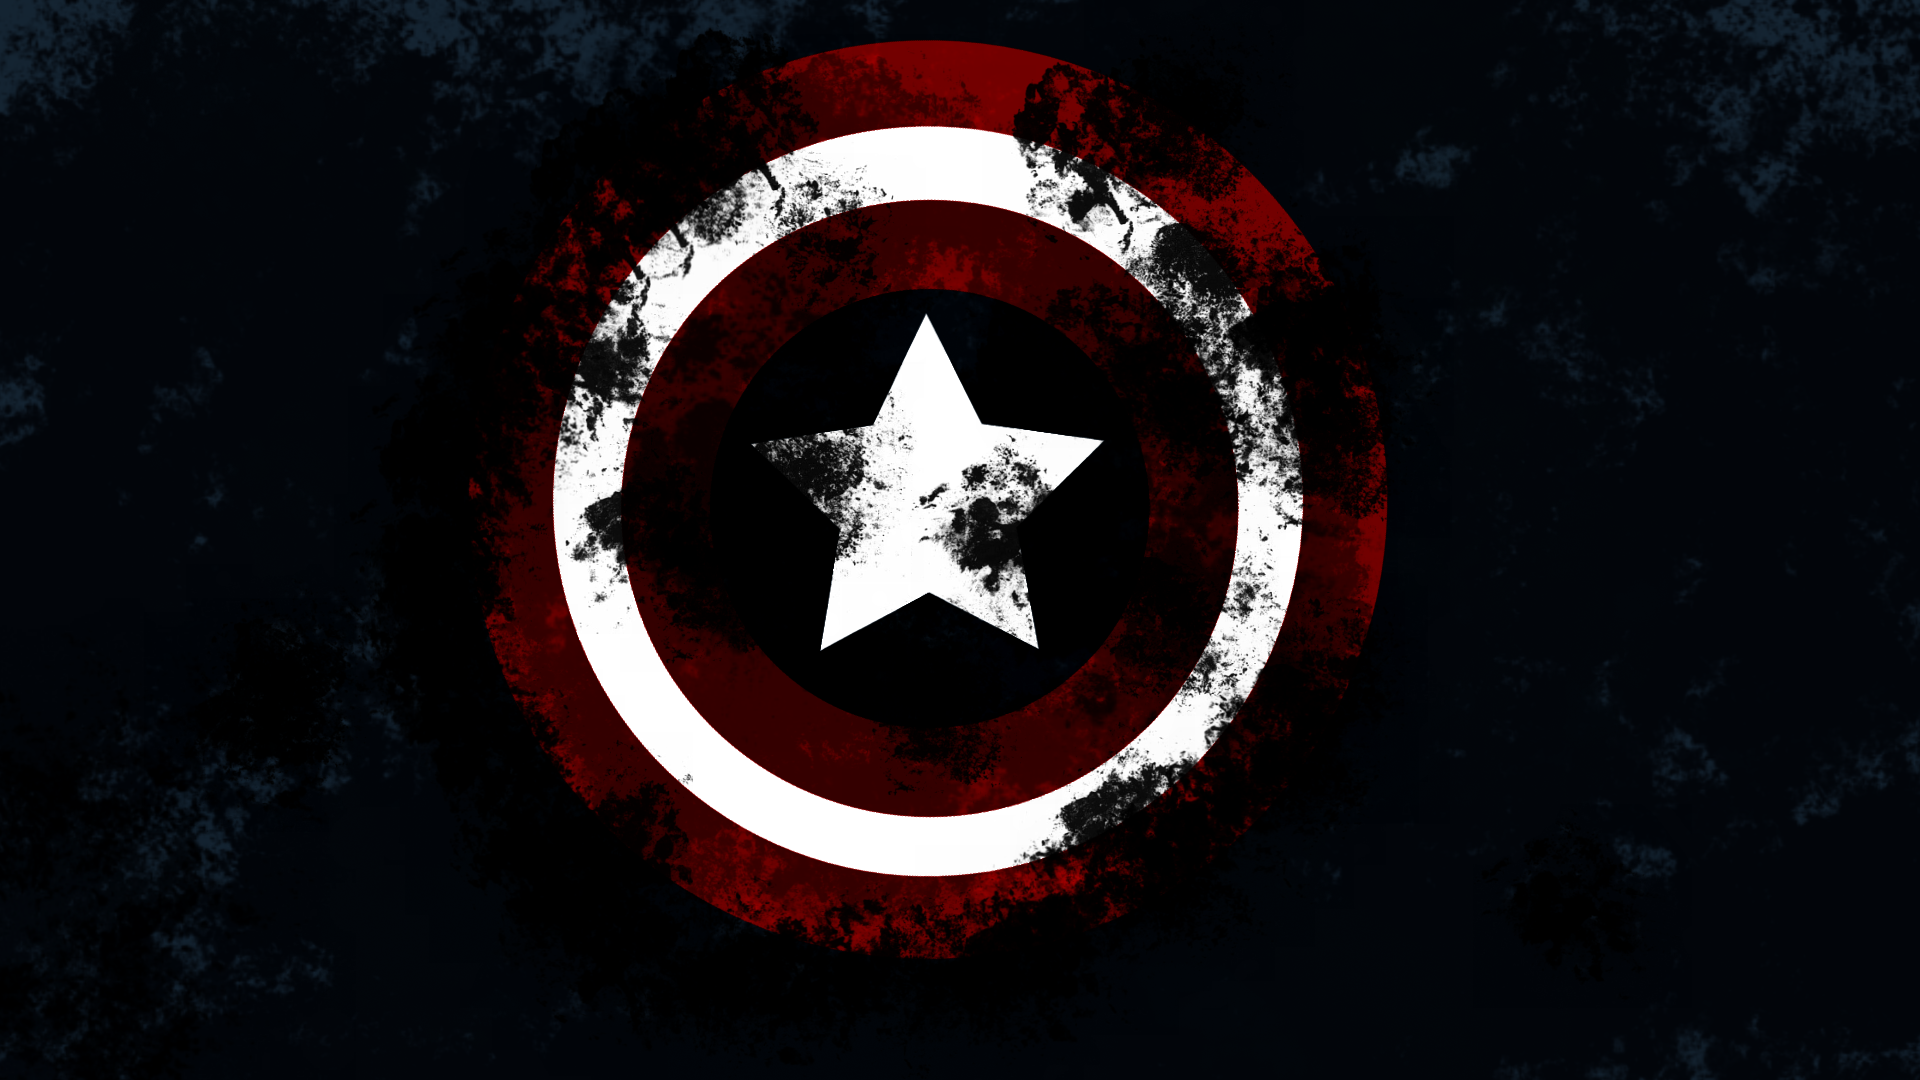 Simple Wallpaper Home Screen Marvel - 59465ed4a9e133abe78758bb70188df5  Snapshot_1007866.png